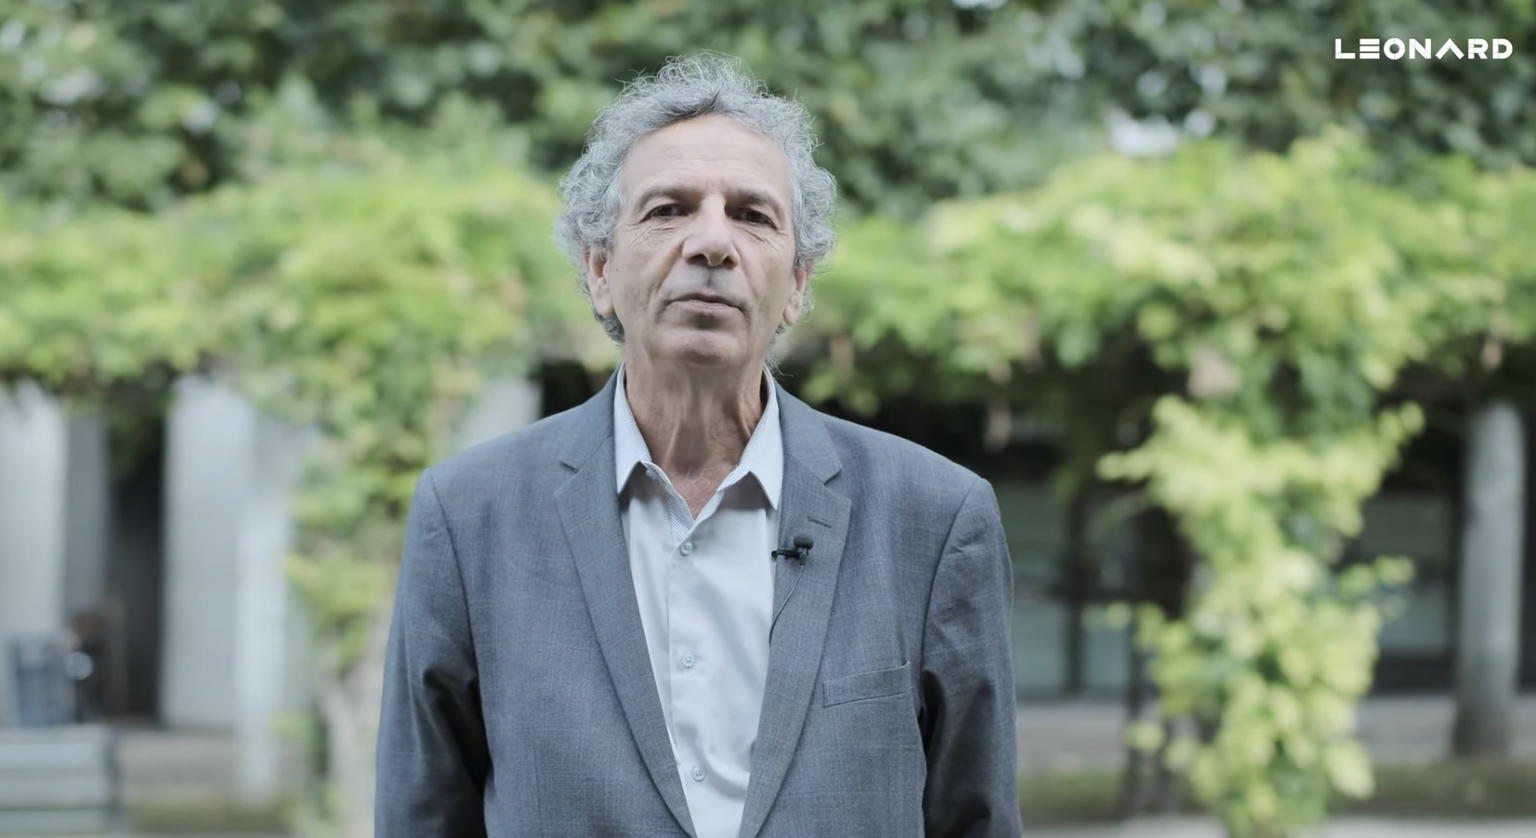 """""""To combat climate change, every actor counts"""": Alain Grandjean's vision for achieving carbon neutrality"""